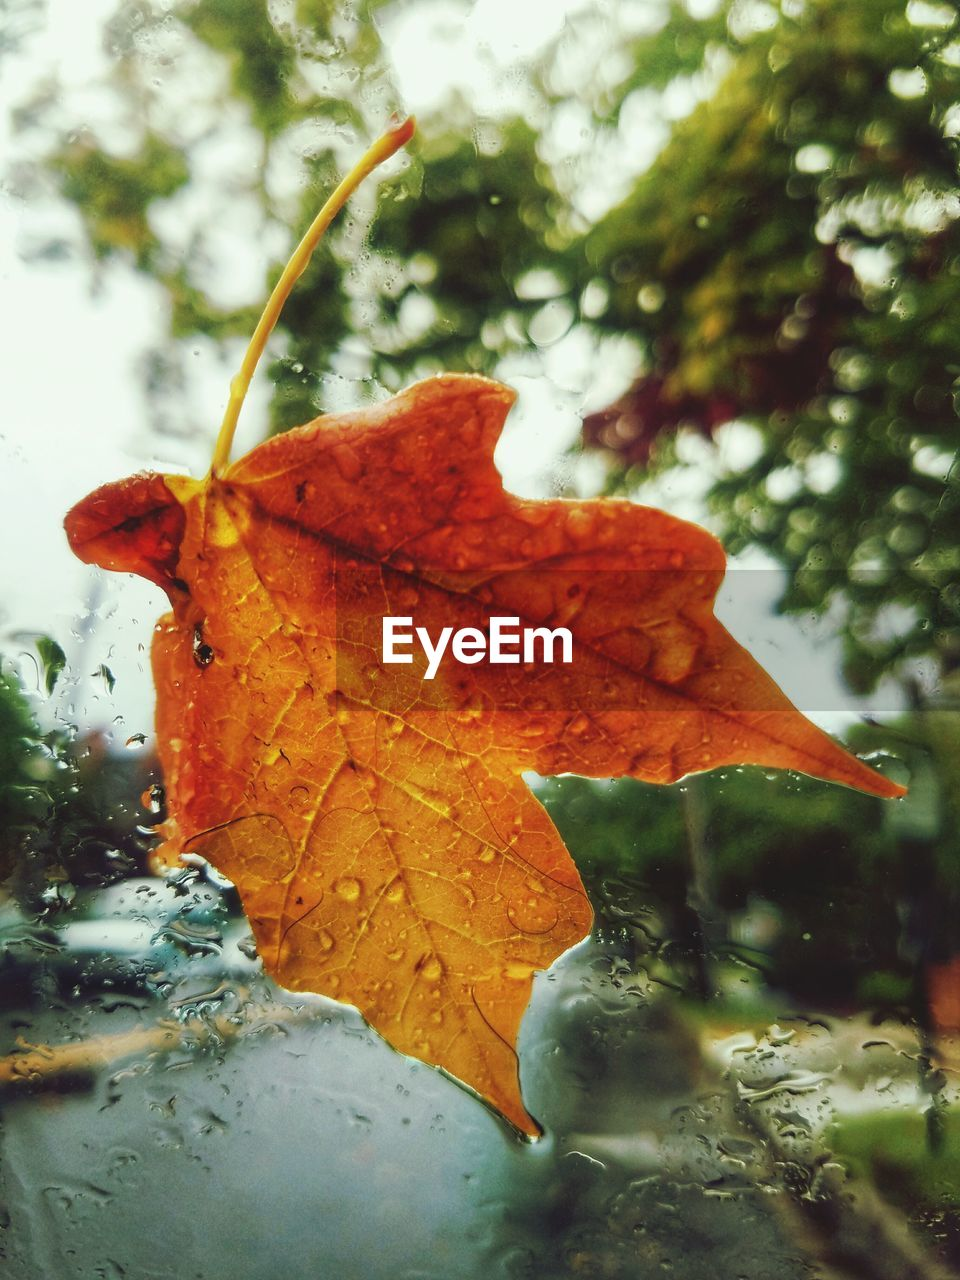 leaf, autumn, change, nature, beauty in nature, maple, day, maple leaf, outdoors, drop, close-up, water, wet, focus on foreground, no people, tree, branch